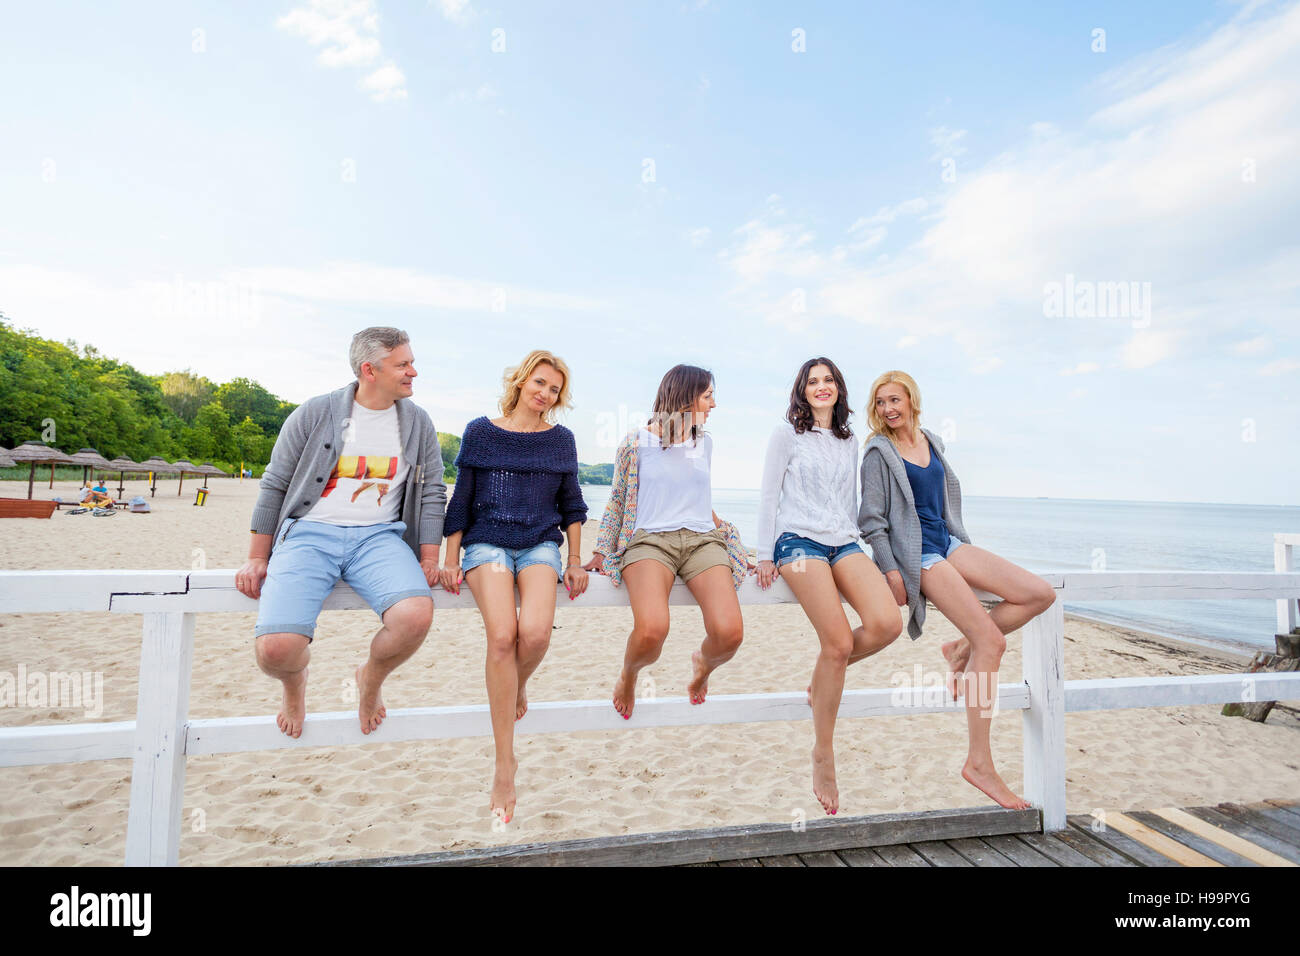 Group of friends take a break sitting on railing - Stock Image